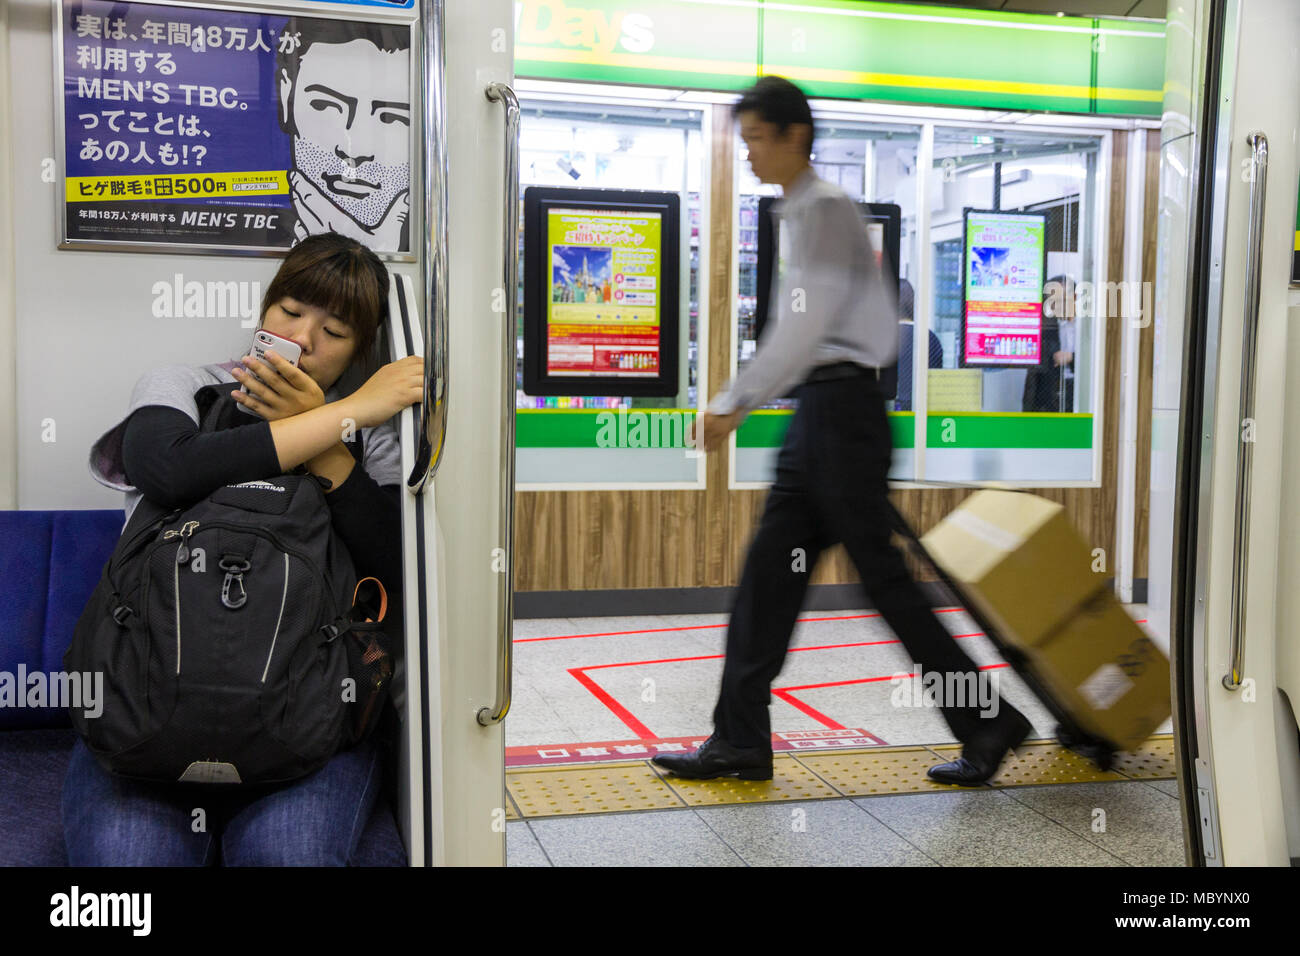 Tokyo, Japan. Typical scene at the Tokyo Subway, with a sit young girl looking at her mobile phone, an advertisement, and a delivery man in haste - Stock Image